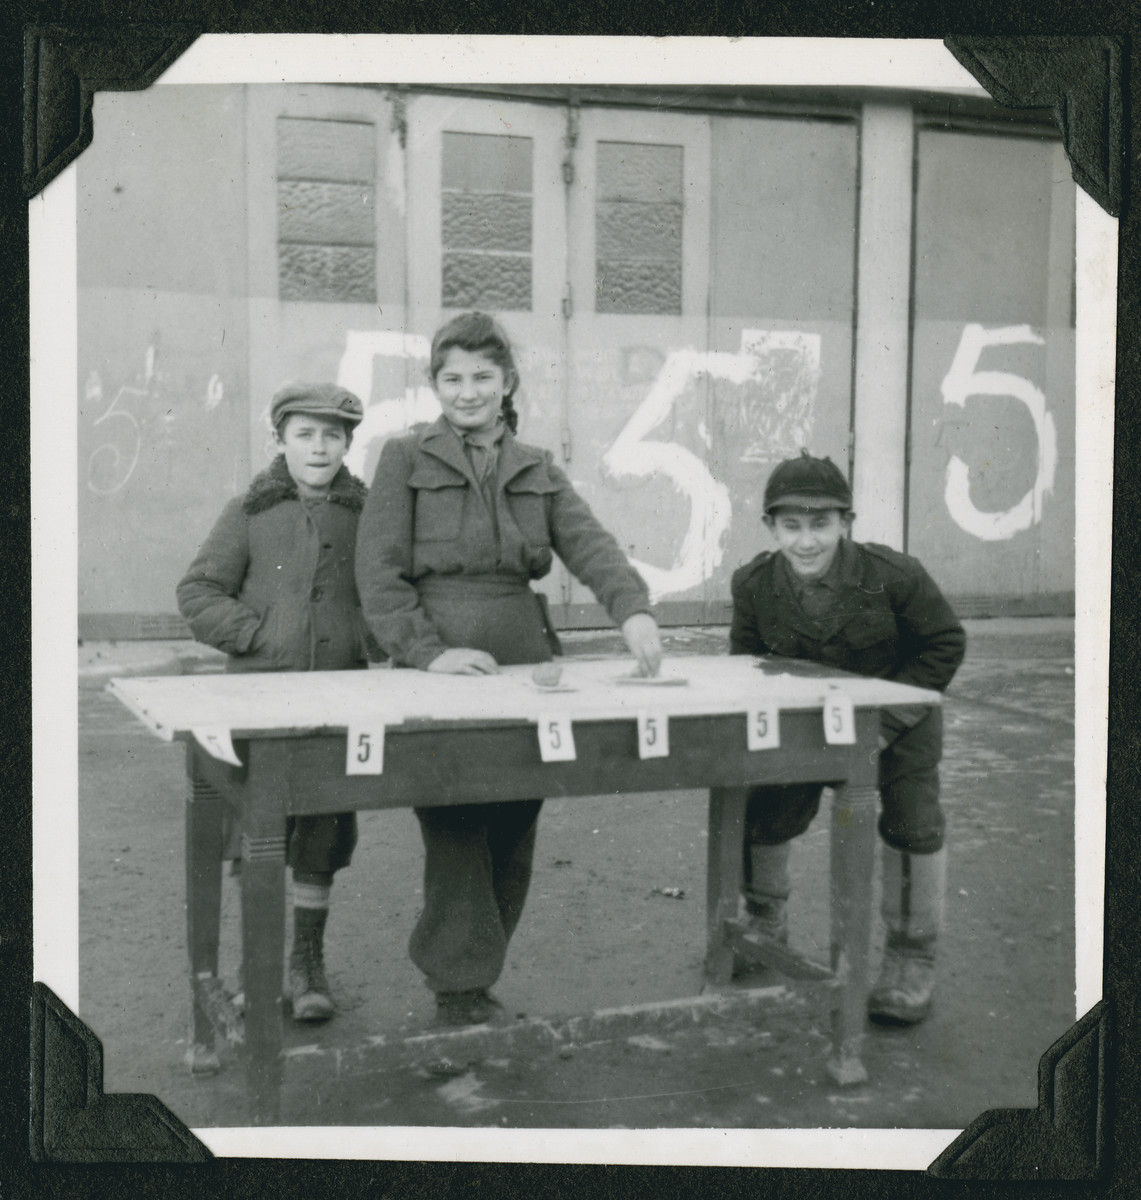 Three children stand by an election table for the World Zionist Organization at the Wetzlar displaced persons camp.